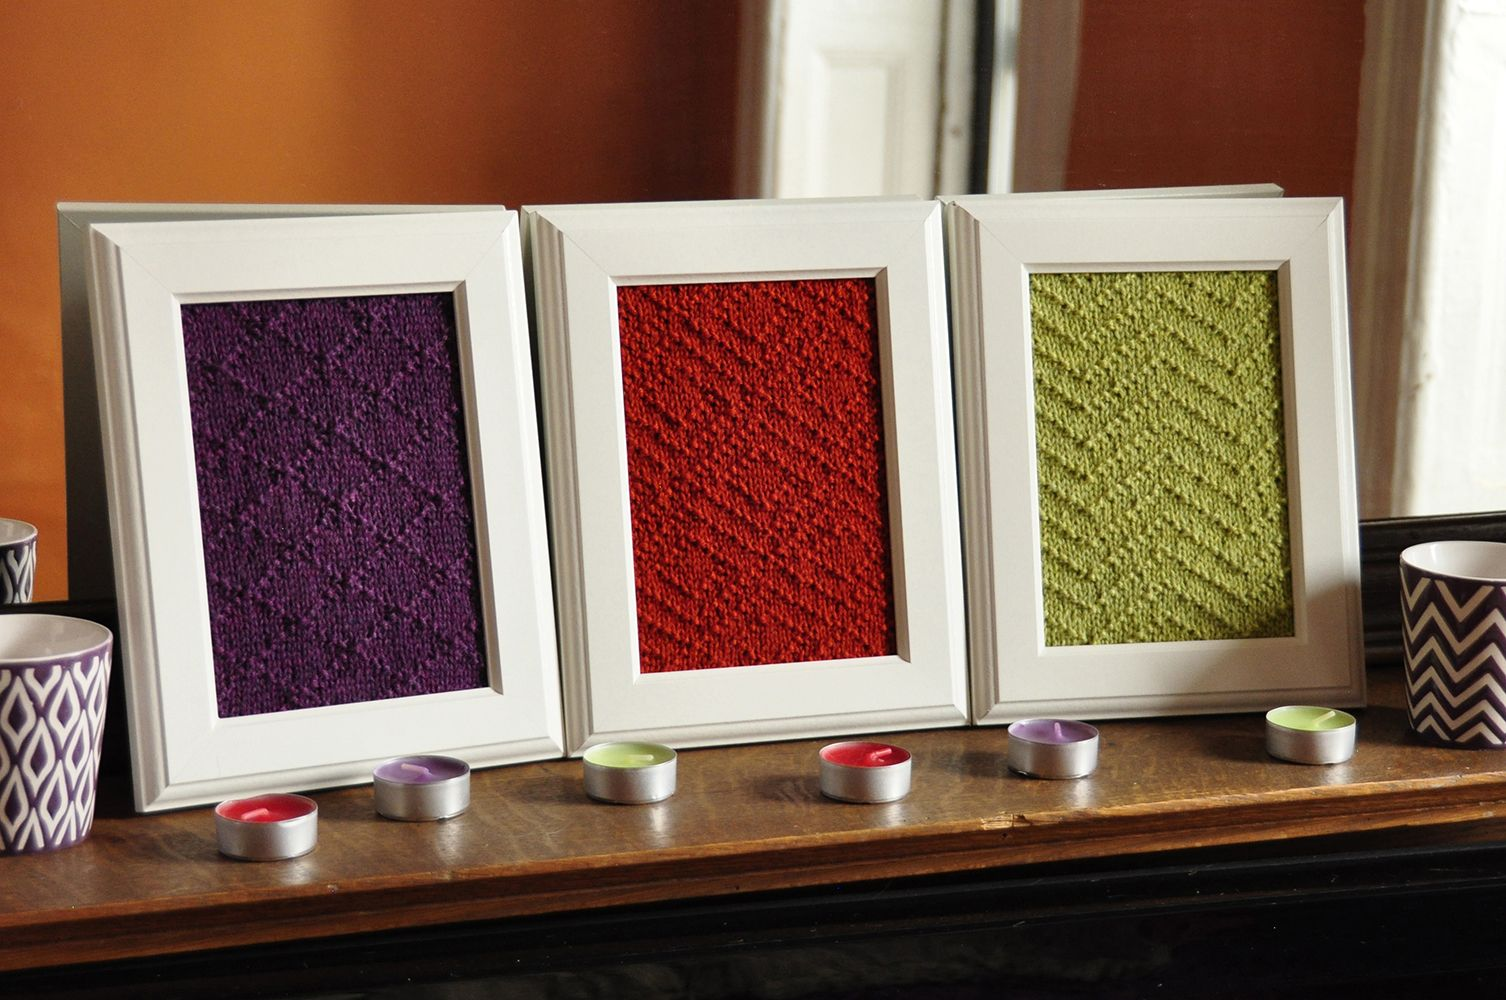 aztec textures knitted wall art knitting pattern   Hand Knit ...